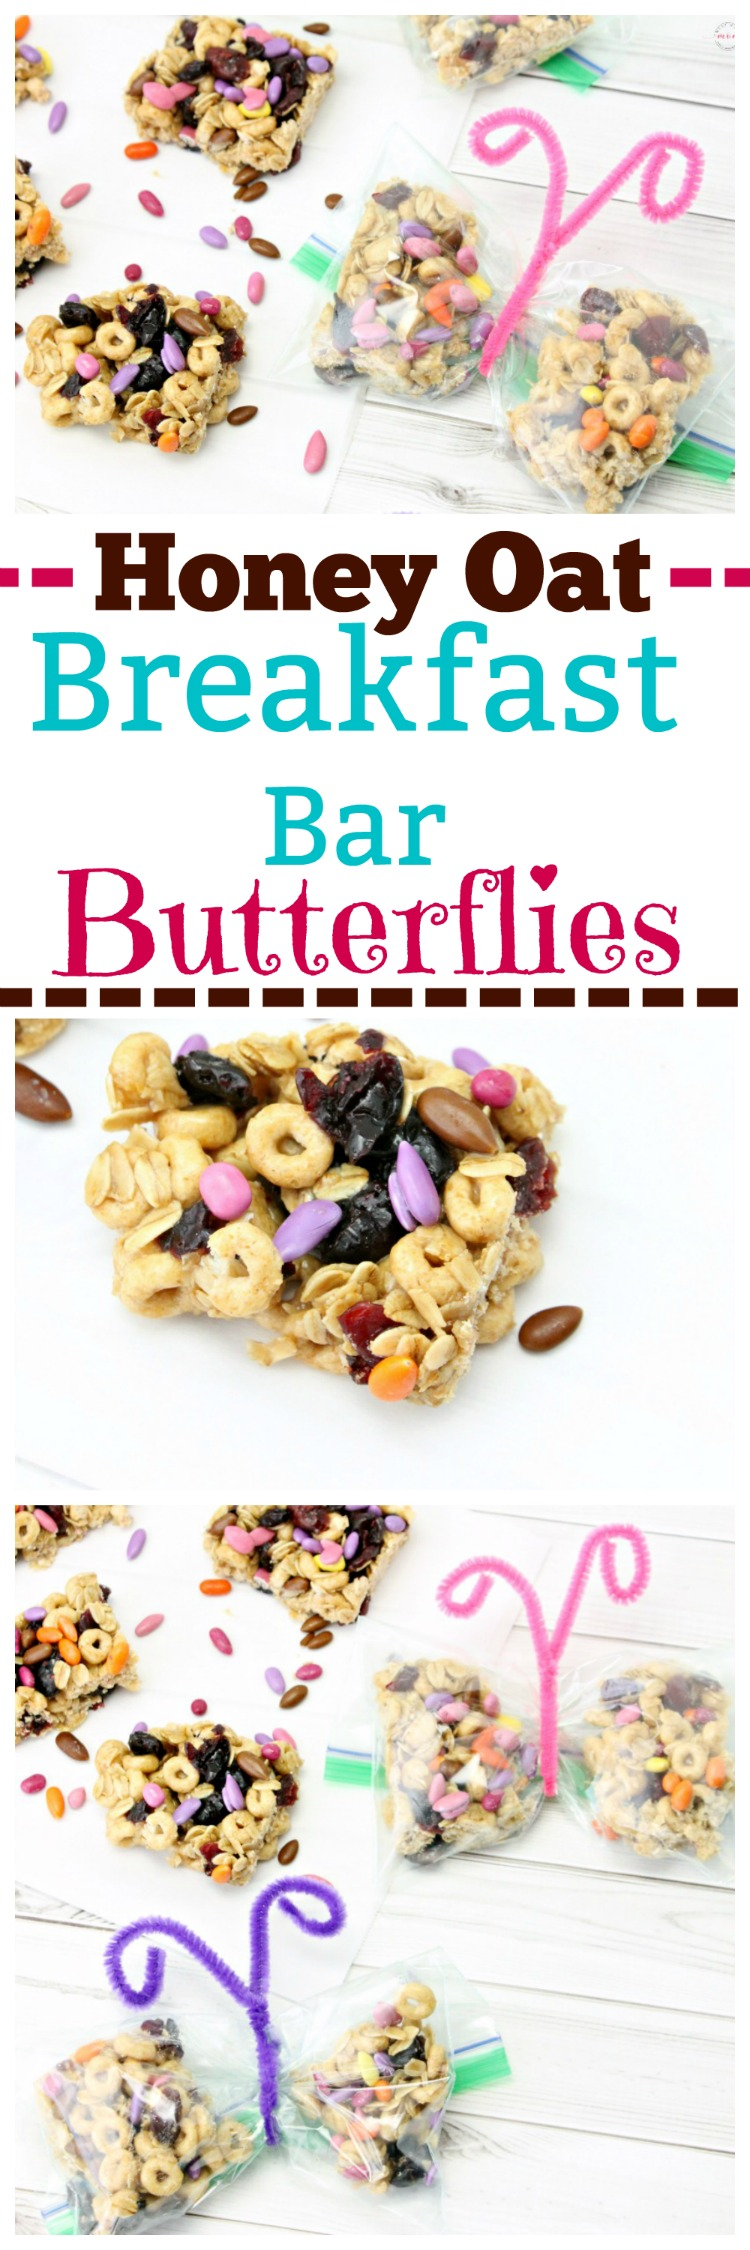 Healthy honey nut oatmeal breakfast bar recipe turned into cute lunchbox butterfly baggies! Easy breakfast or snack for kids and adults.